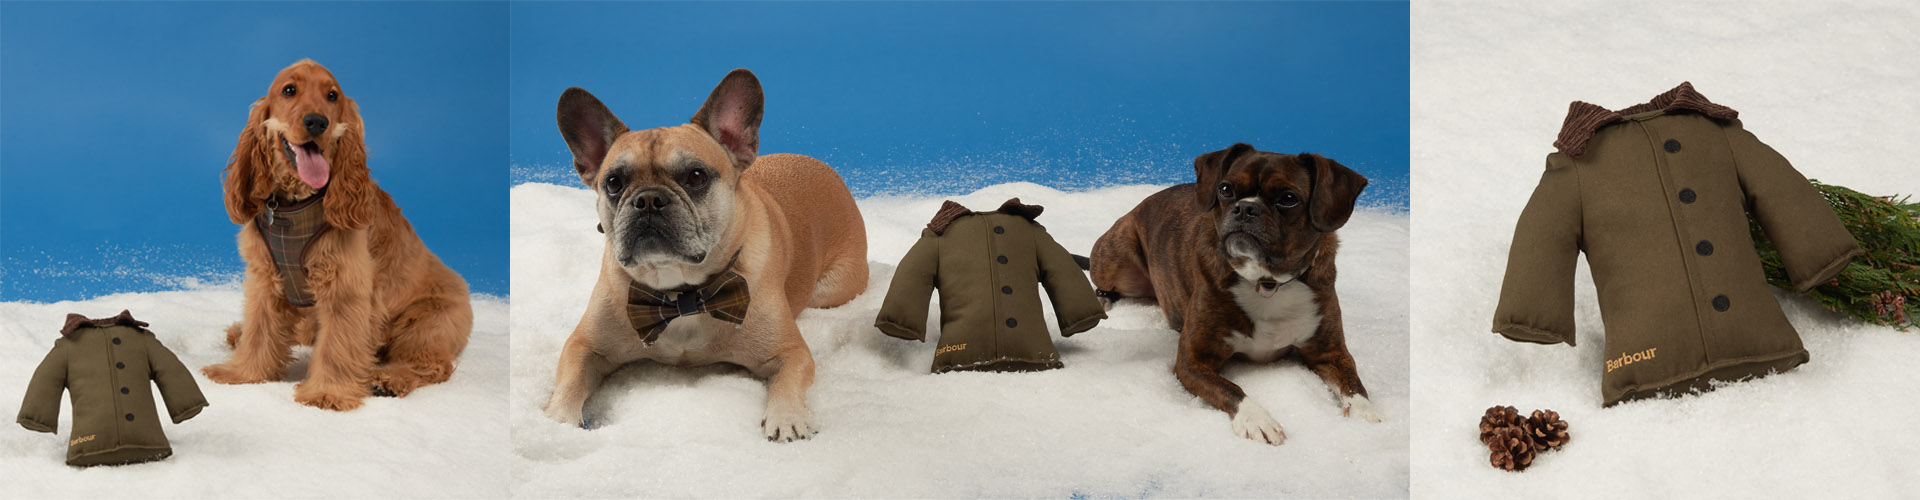 Barbour Dogs Christmas Competition